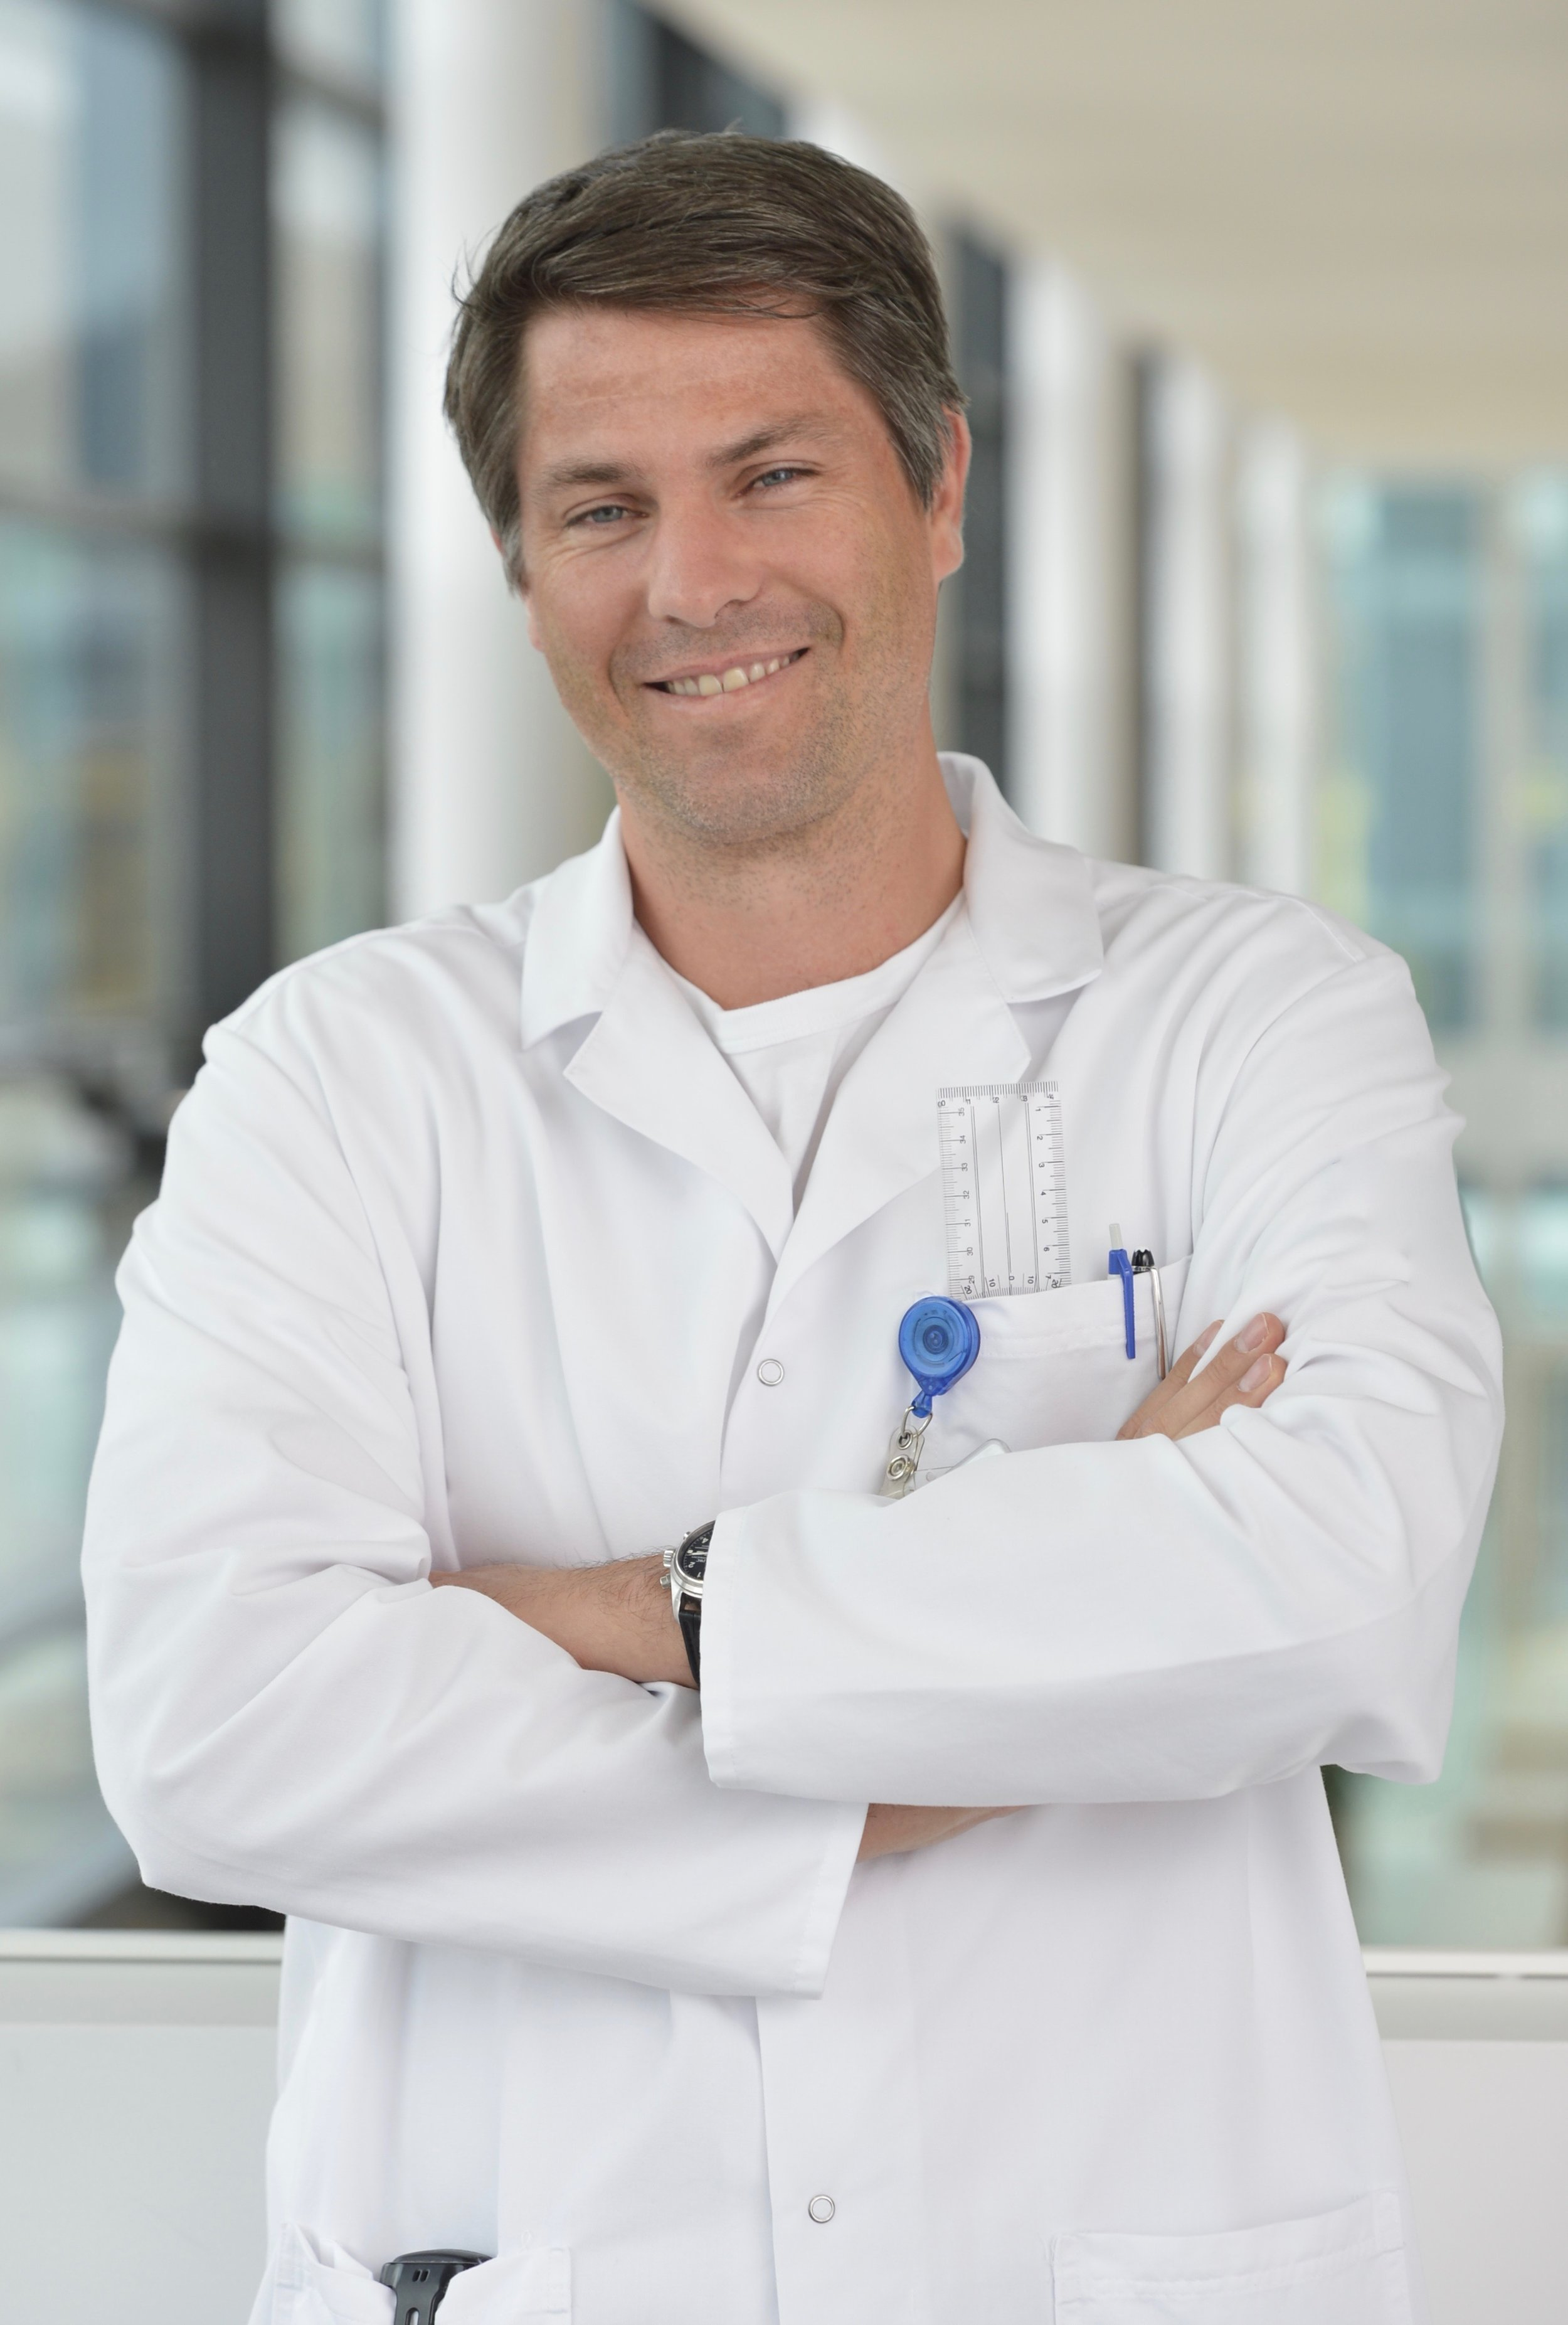 Matthias Schmied- Doctor of Medicine, MD. Specializedin Orthopaedics and Traumatology. He studied medicine at the University of Zurich (Universitätsspital, Zürich) and has been practicing since 2000. Dr. Schmied has worked in leading healthcare institutions in Switzerland, Germany and Scotland. Since 2016, he has run his own practice. Among others, he is a member of the International Society for Hip Arthroscopy (ISHA) and the Swiss Medical Association (Vereinigung der Schweizer Ärztinnen und Ärzte, FMH). - Dr. med. Matthias Schmied